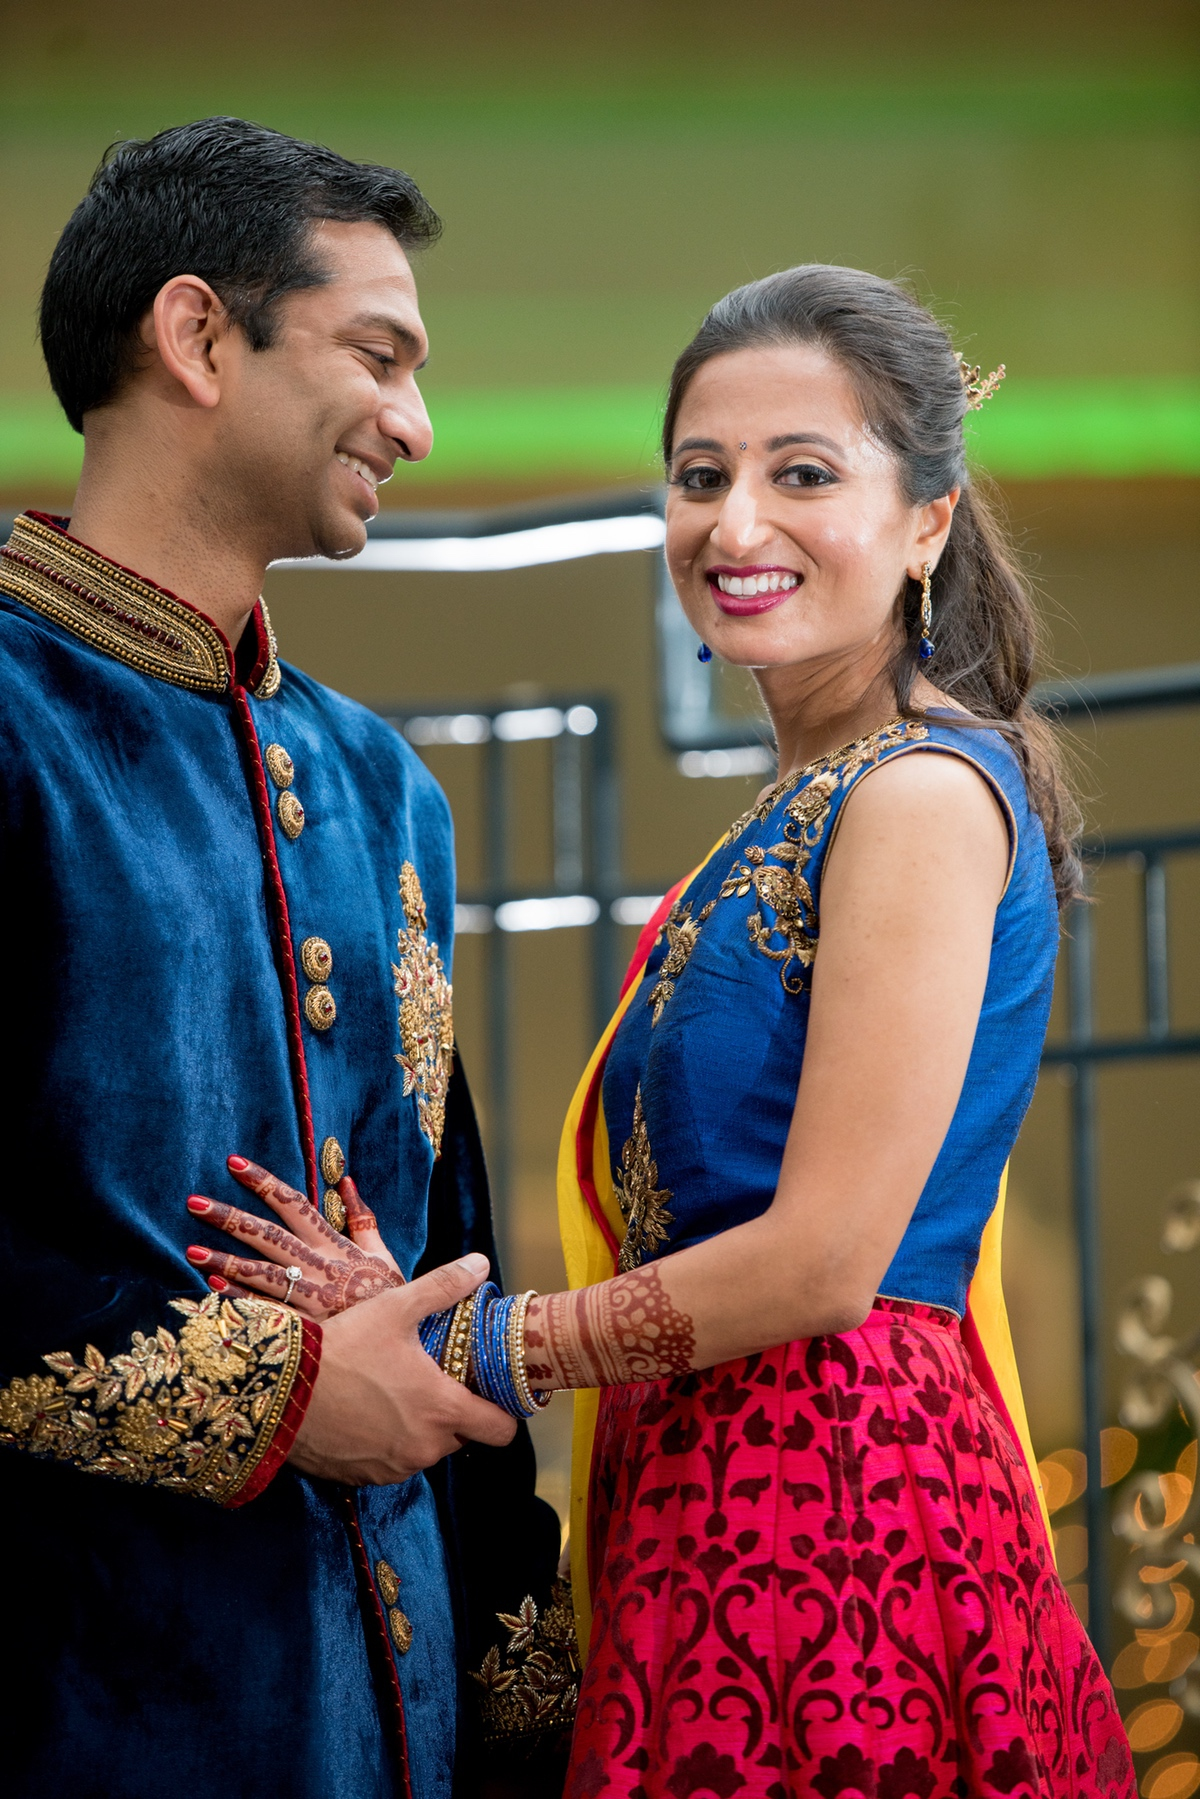 Le Cape Weddings - South Asian Wedding - Chicago Wedding Photographer P&V-13-2.jpg